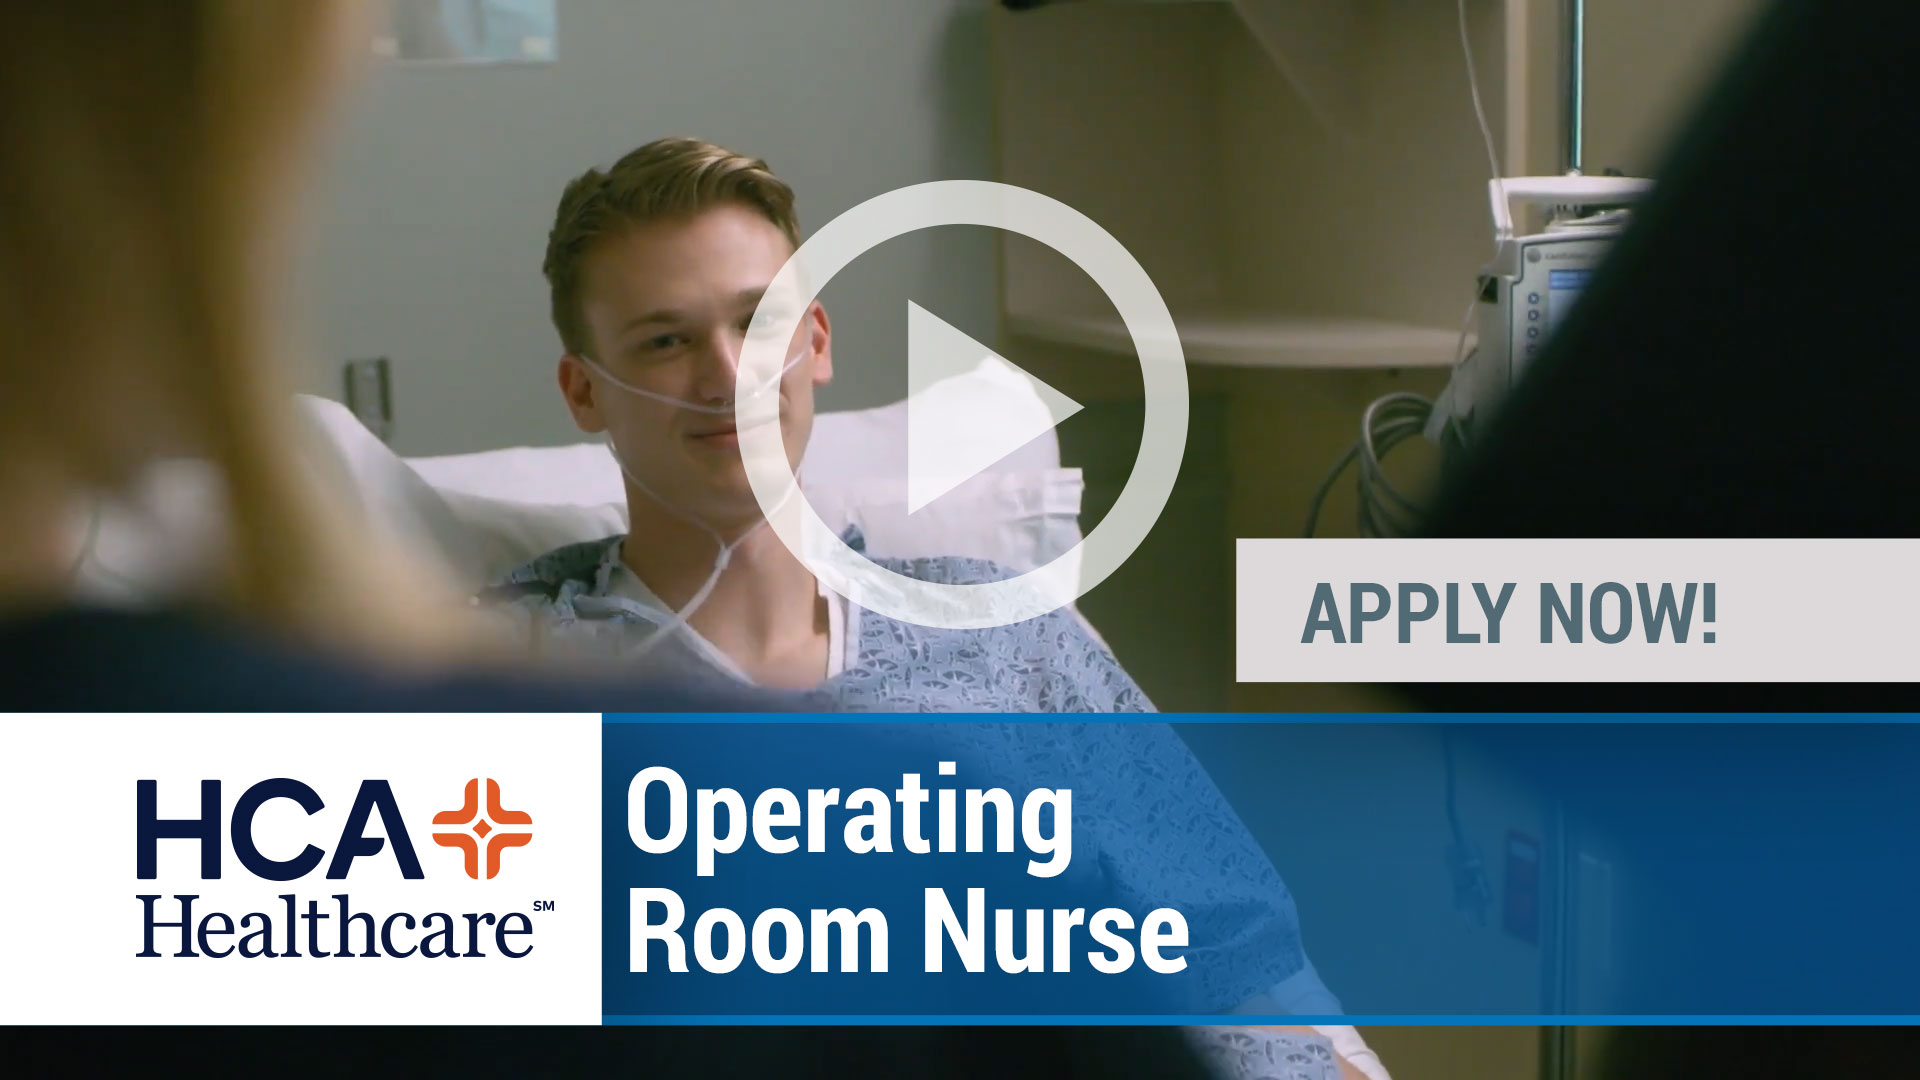 Watch our careers video for available job opening Operating Room Nurse in El Paso, Texas